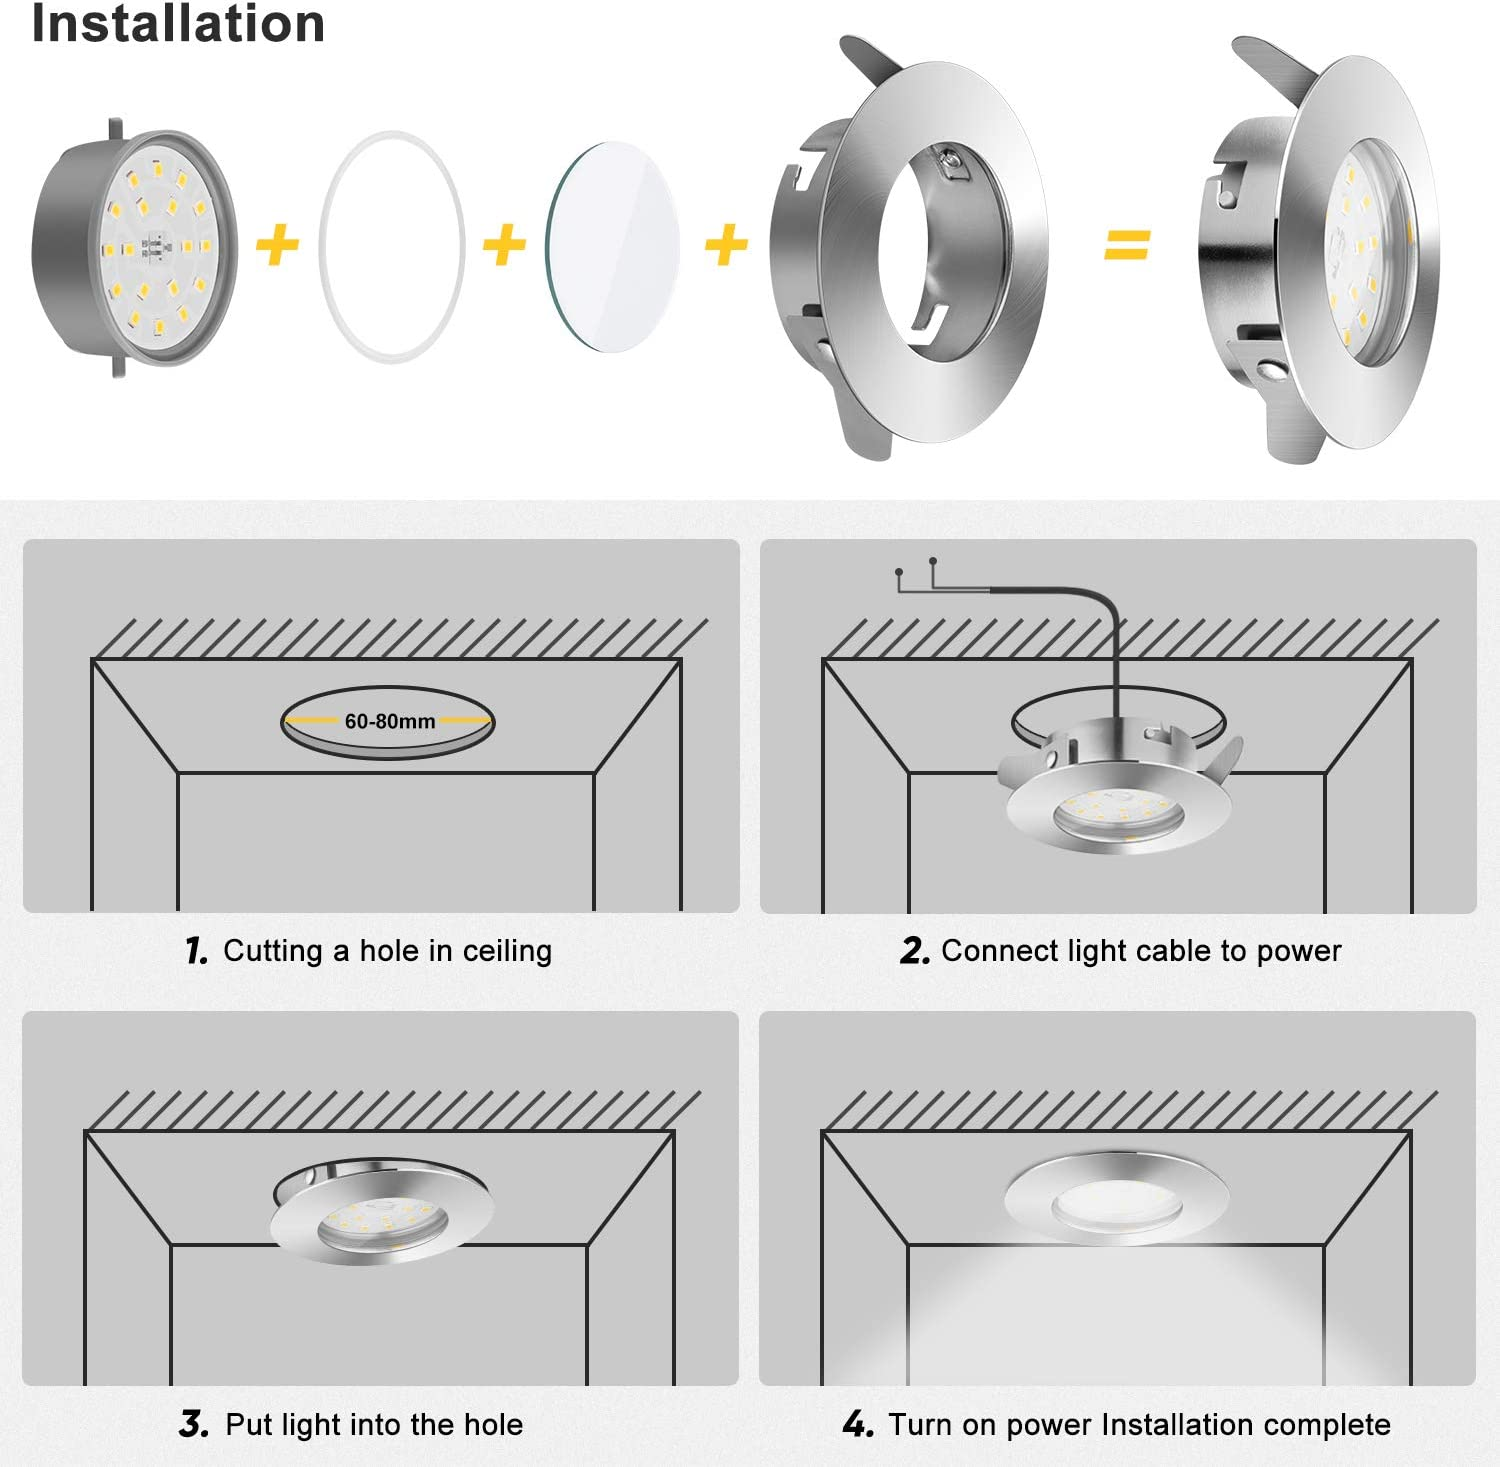 Hole /Ø2.36inch Wowatt 6X 6W LED Recessed Ceiling Lights Bathroom Cool White 6000K 240V Recessed Spot Lights for Ceiling 540lm Bright 50W Halogen Equivalent Downlight f Recessed Ceiling Light IP44